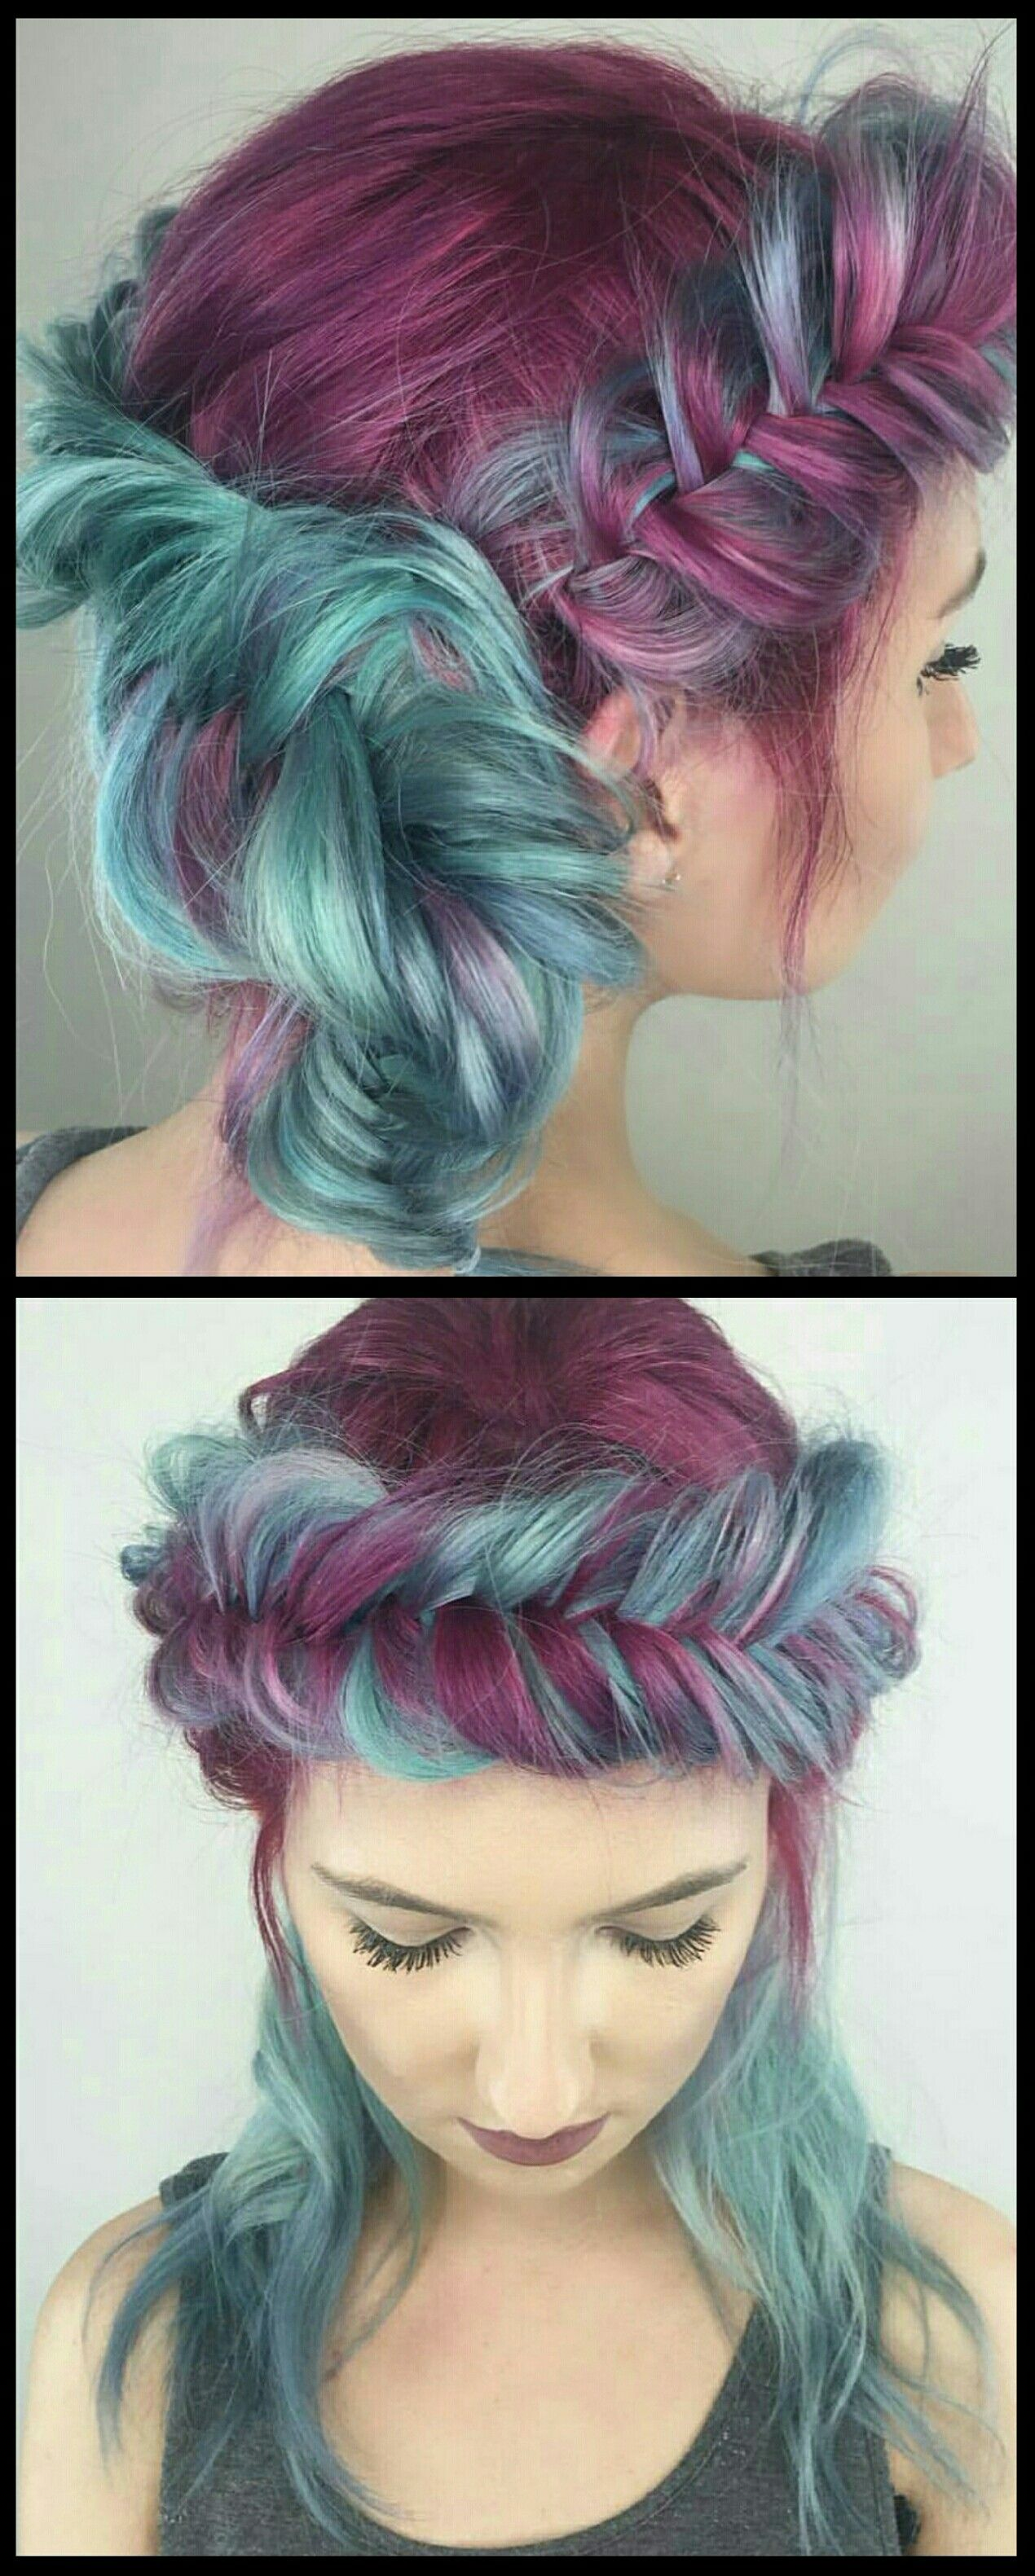 Purple blue fishtail braided dyed hair color @chitabesesu ...